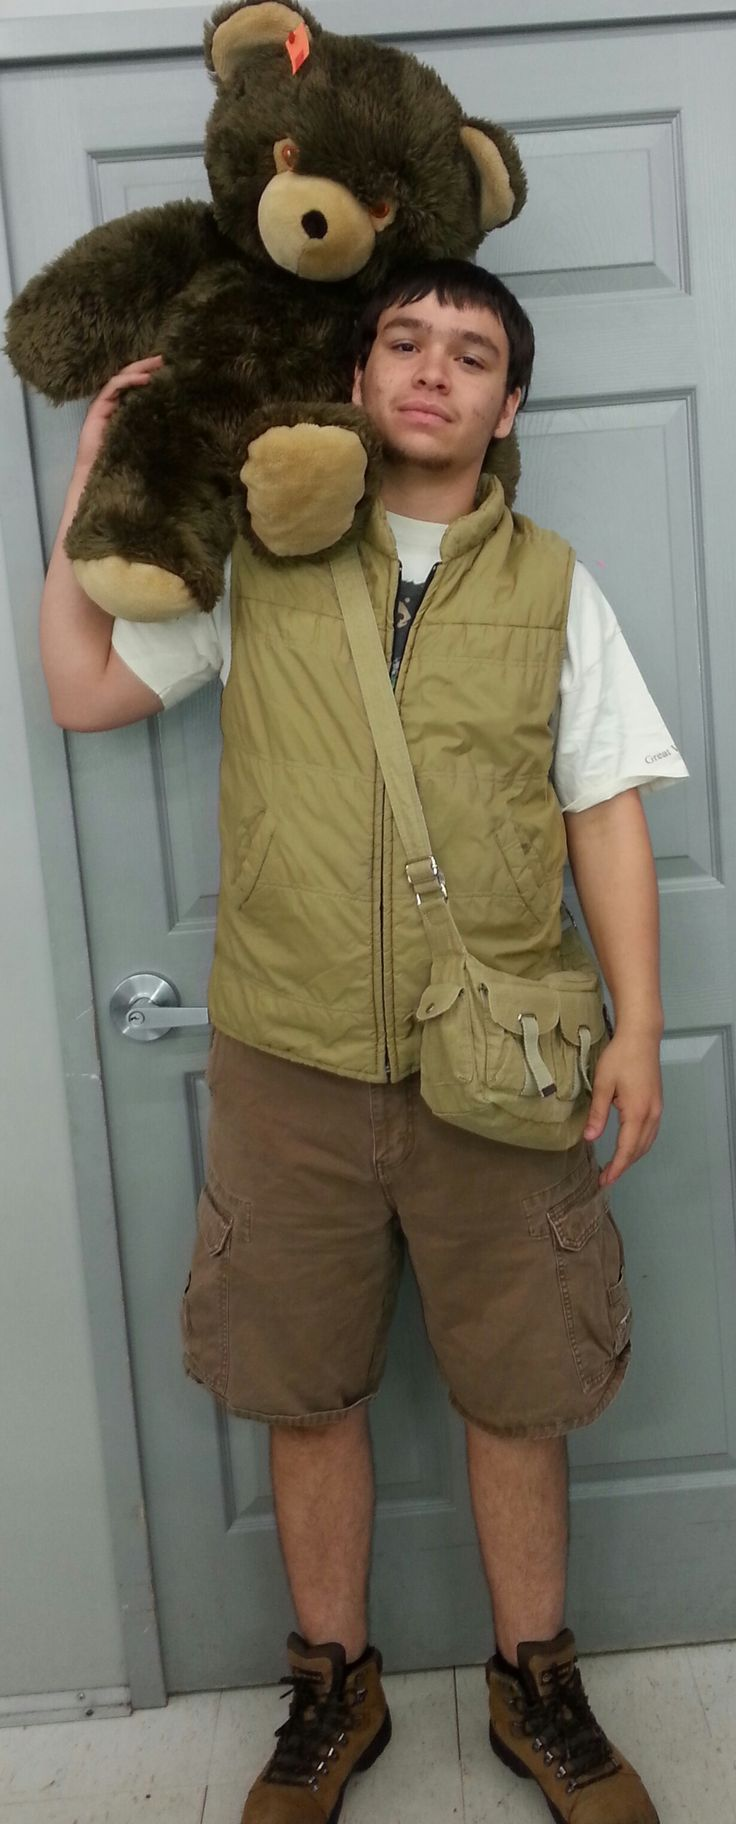 Zookeeper costume created from pieces found at Goodwill.